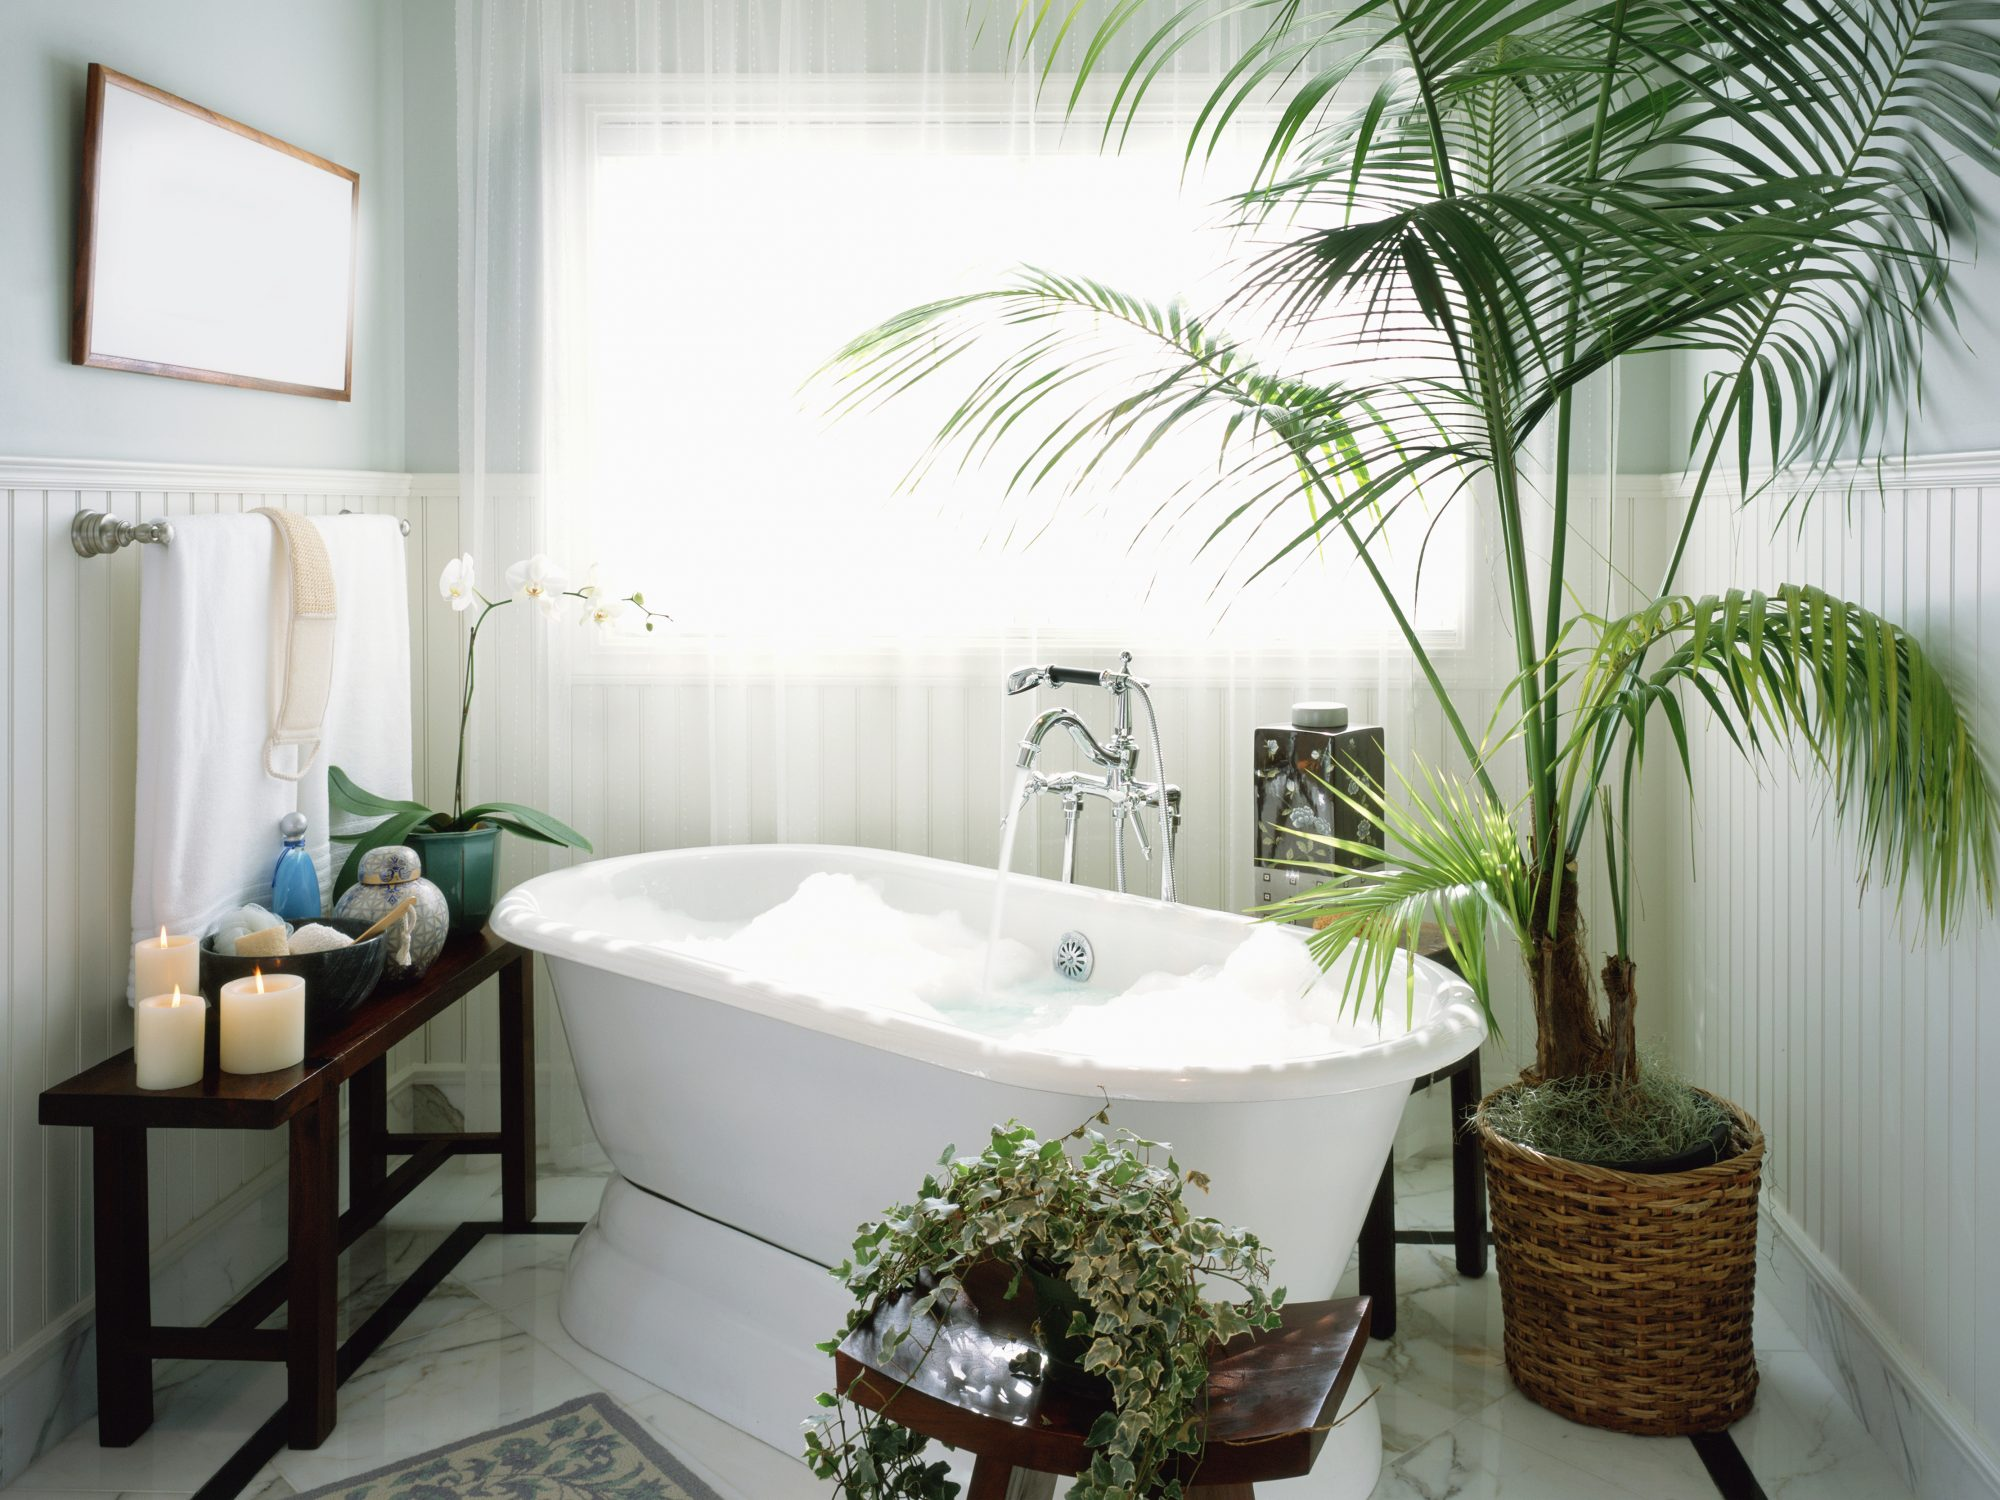 How to Take the Perfect Bath, According to Science: Bubble bath with potted plants